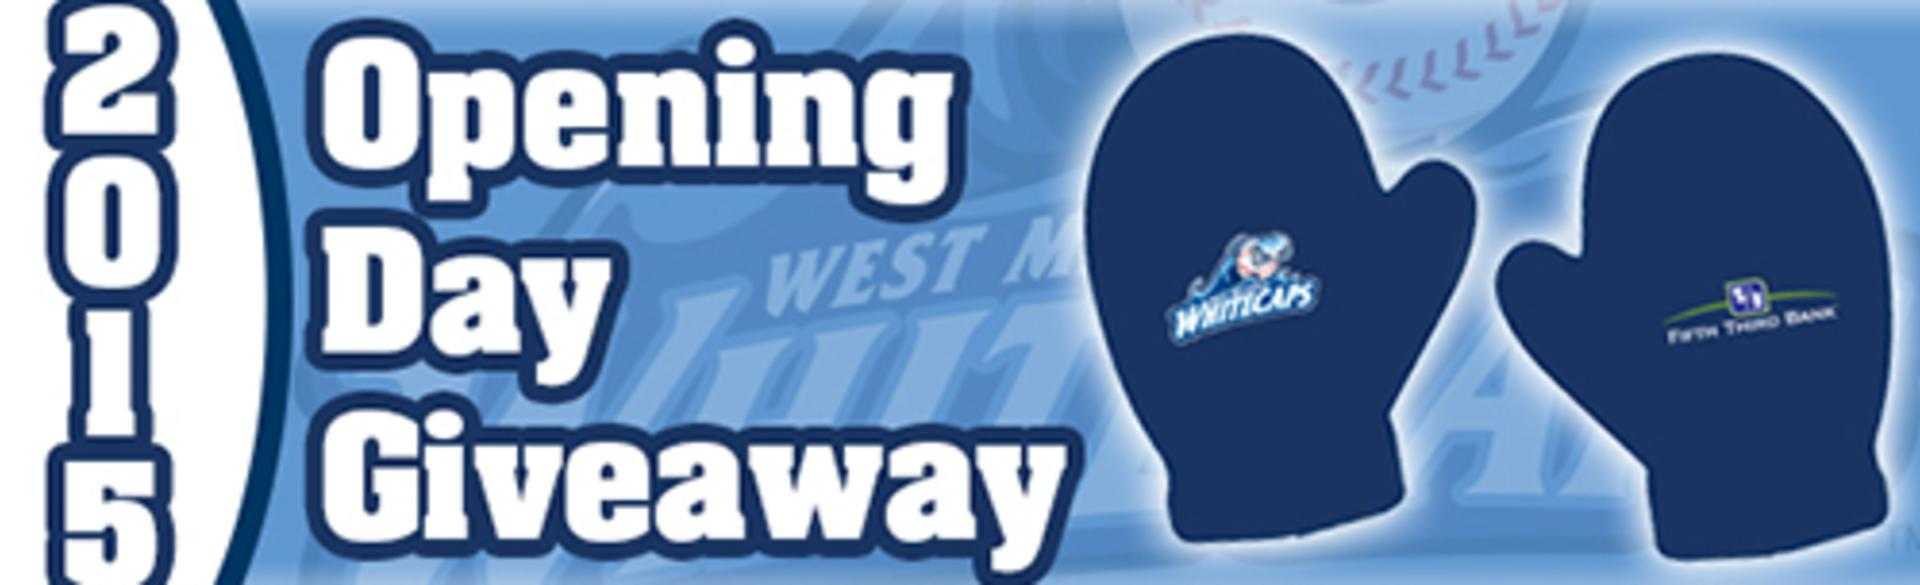 Whitecaps Opening Day Giveaway 2015